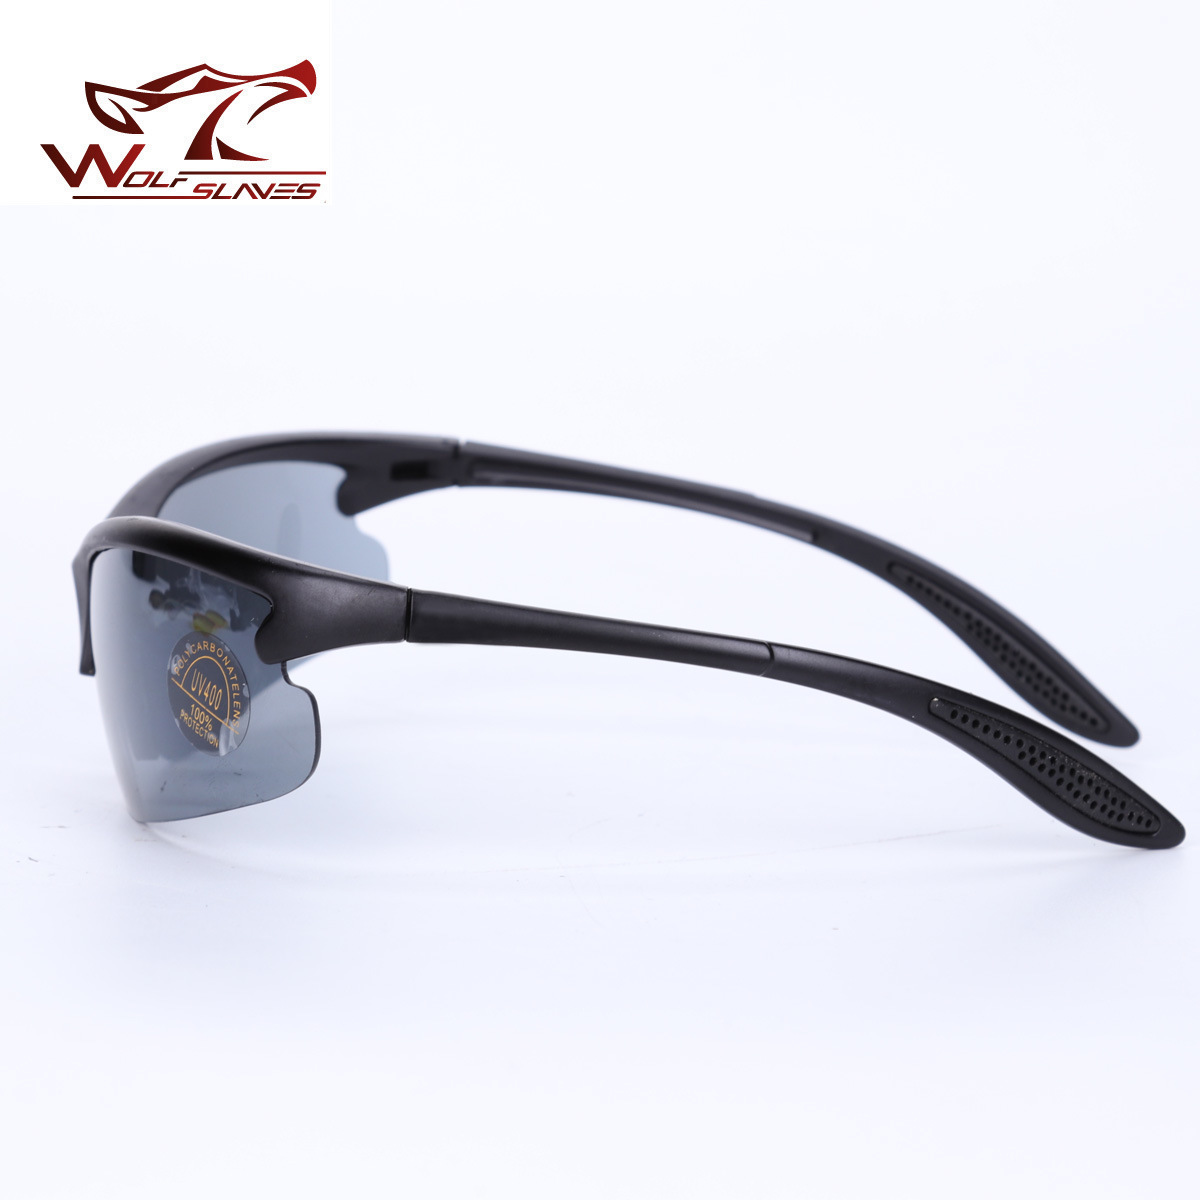 6140af025a1 Military Training C3 Glasses Tactical Shooting Glasses UV400 4 Lens Kit  Outdoor Sports Glasses Hunting Shooting Goggles Hiking Eyewear